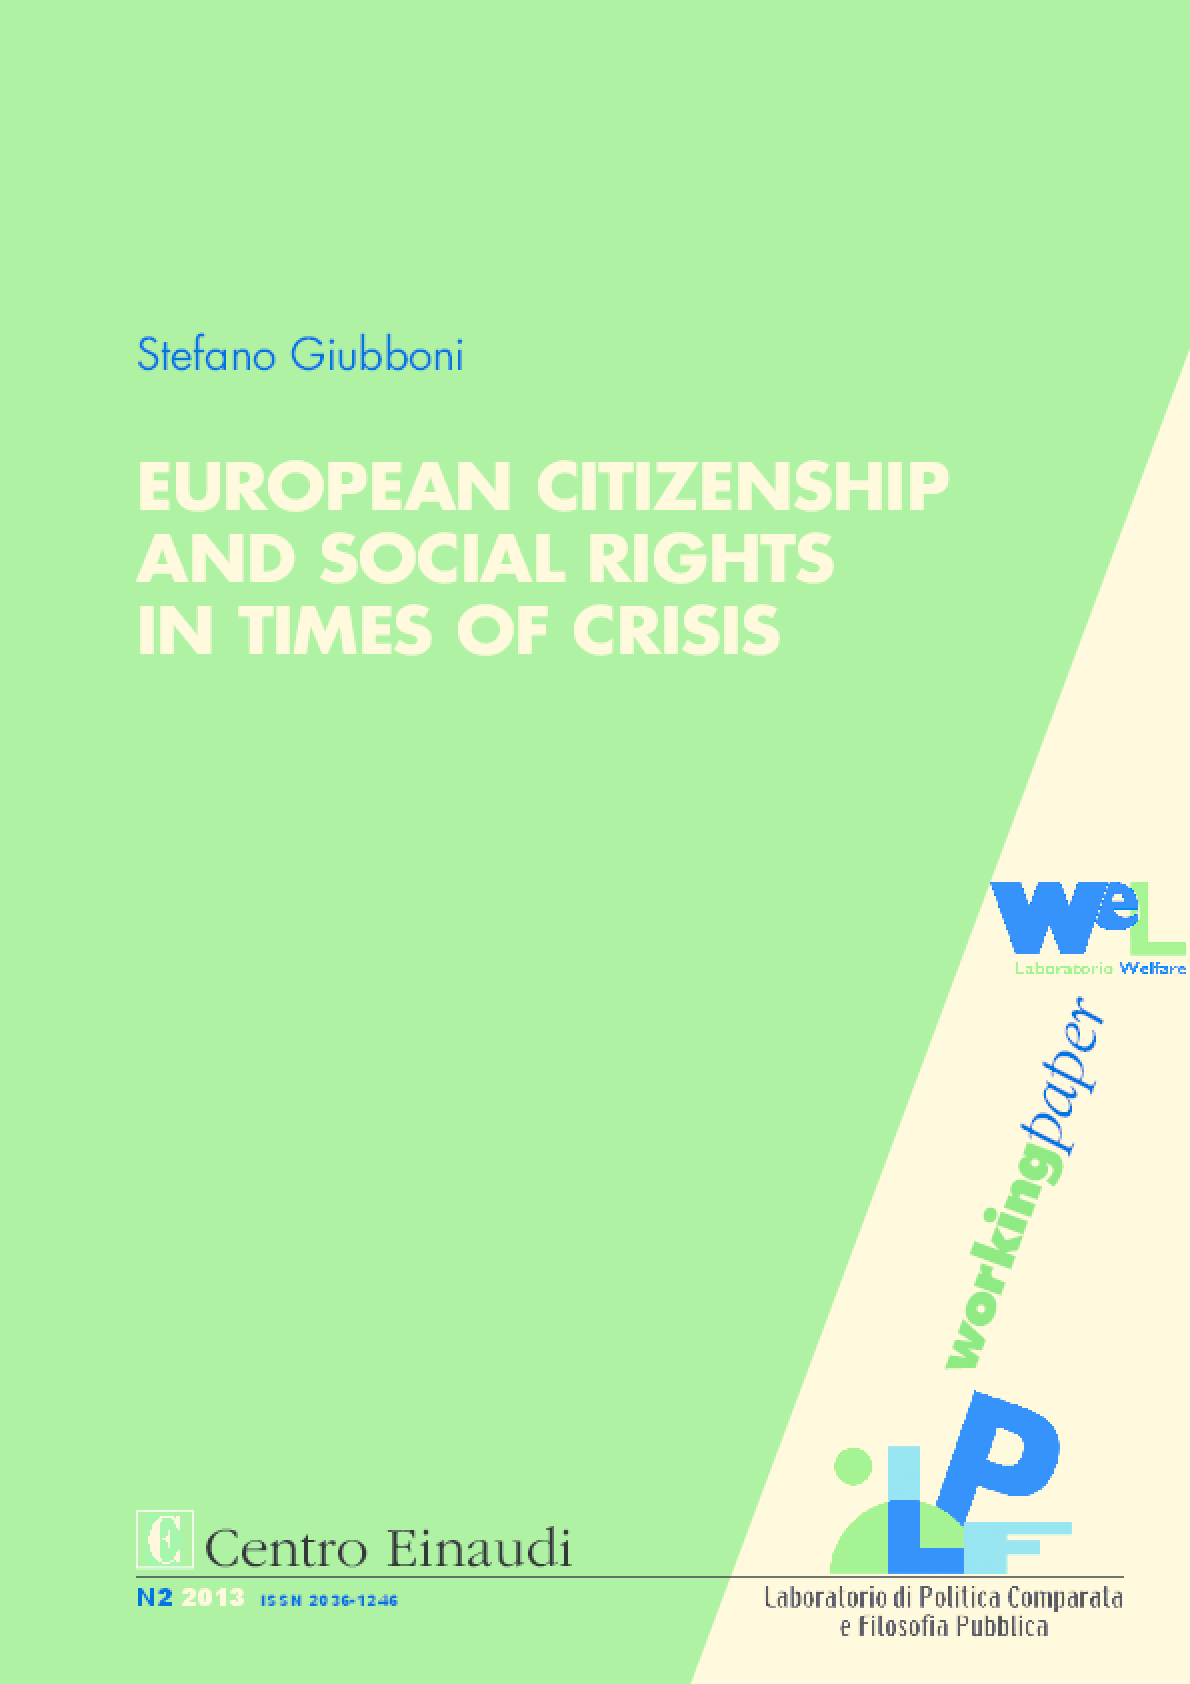 European Citizenship, Labour Law and Social Rights in Times of Crisis